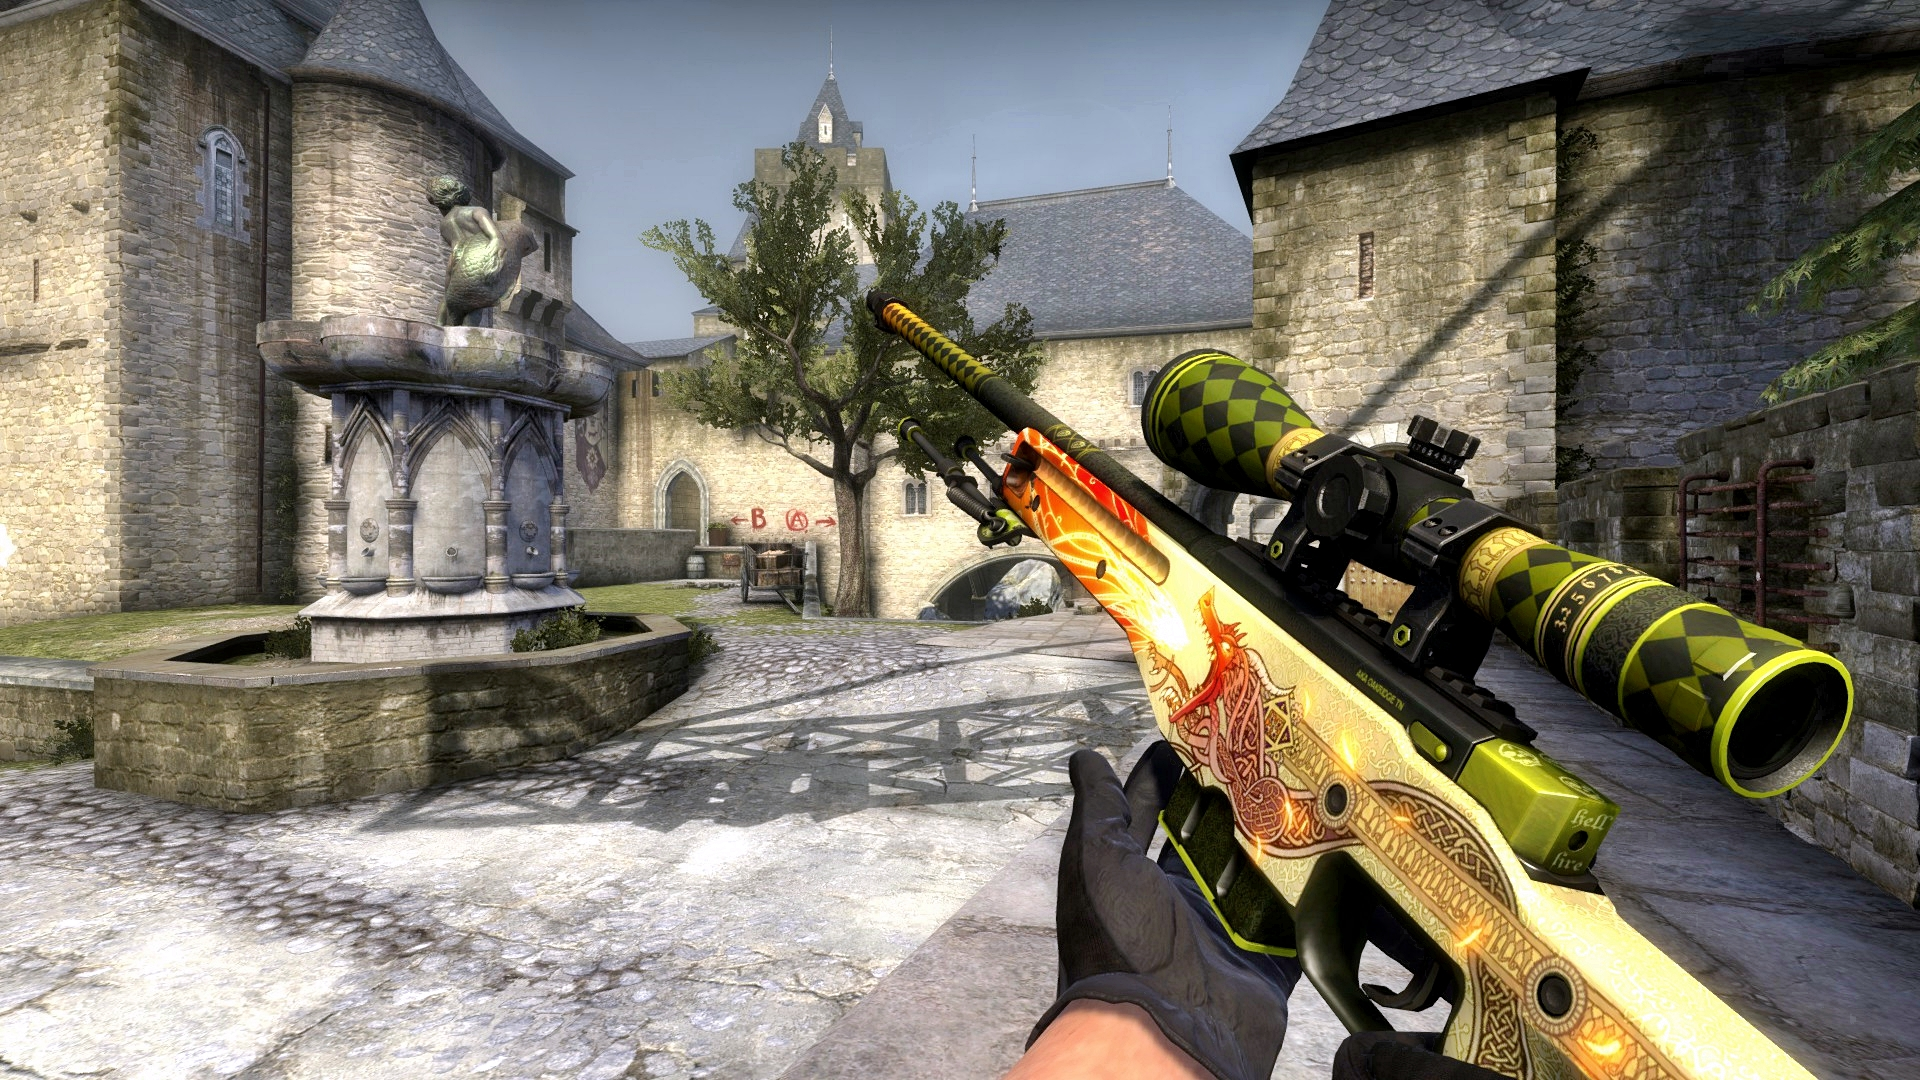 Dragon Lore Wallpaper This Item Has Been Banned